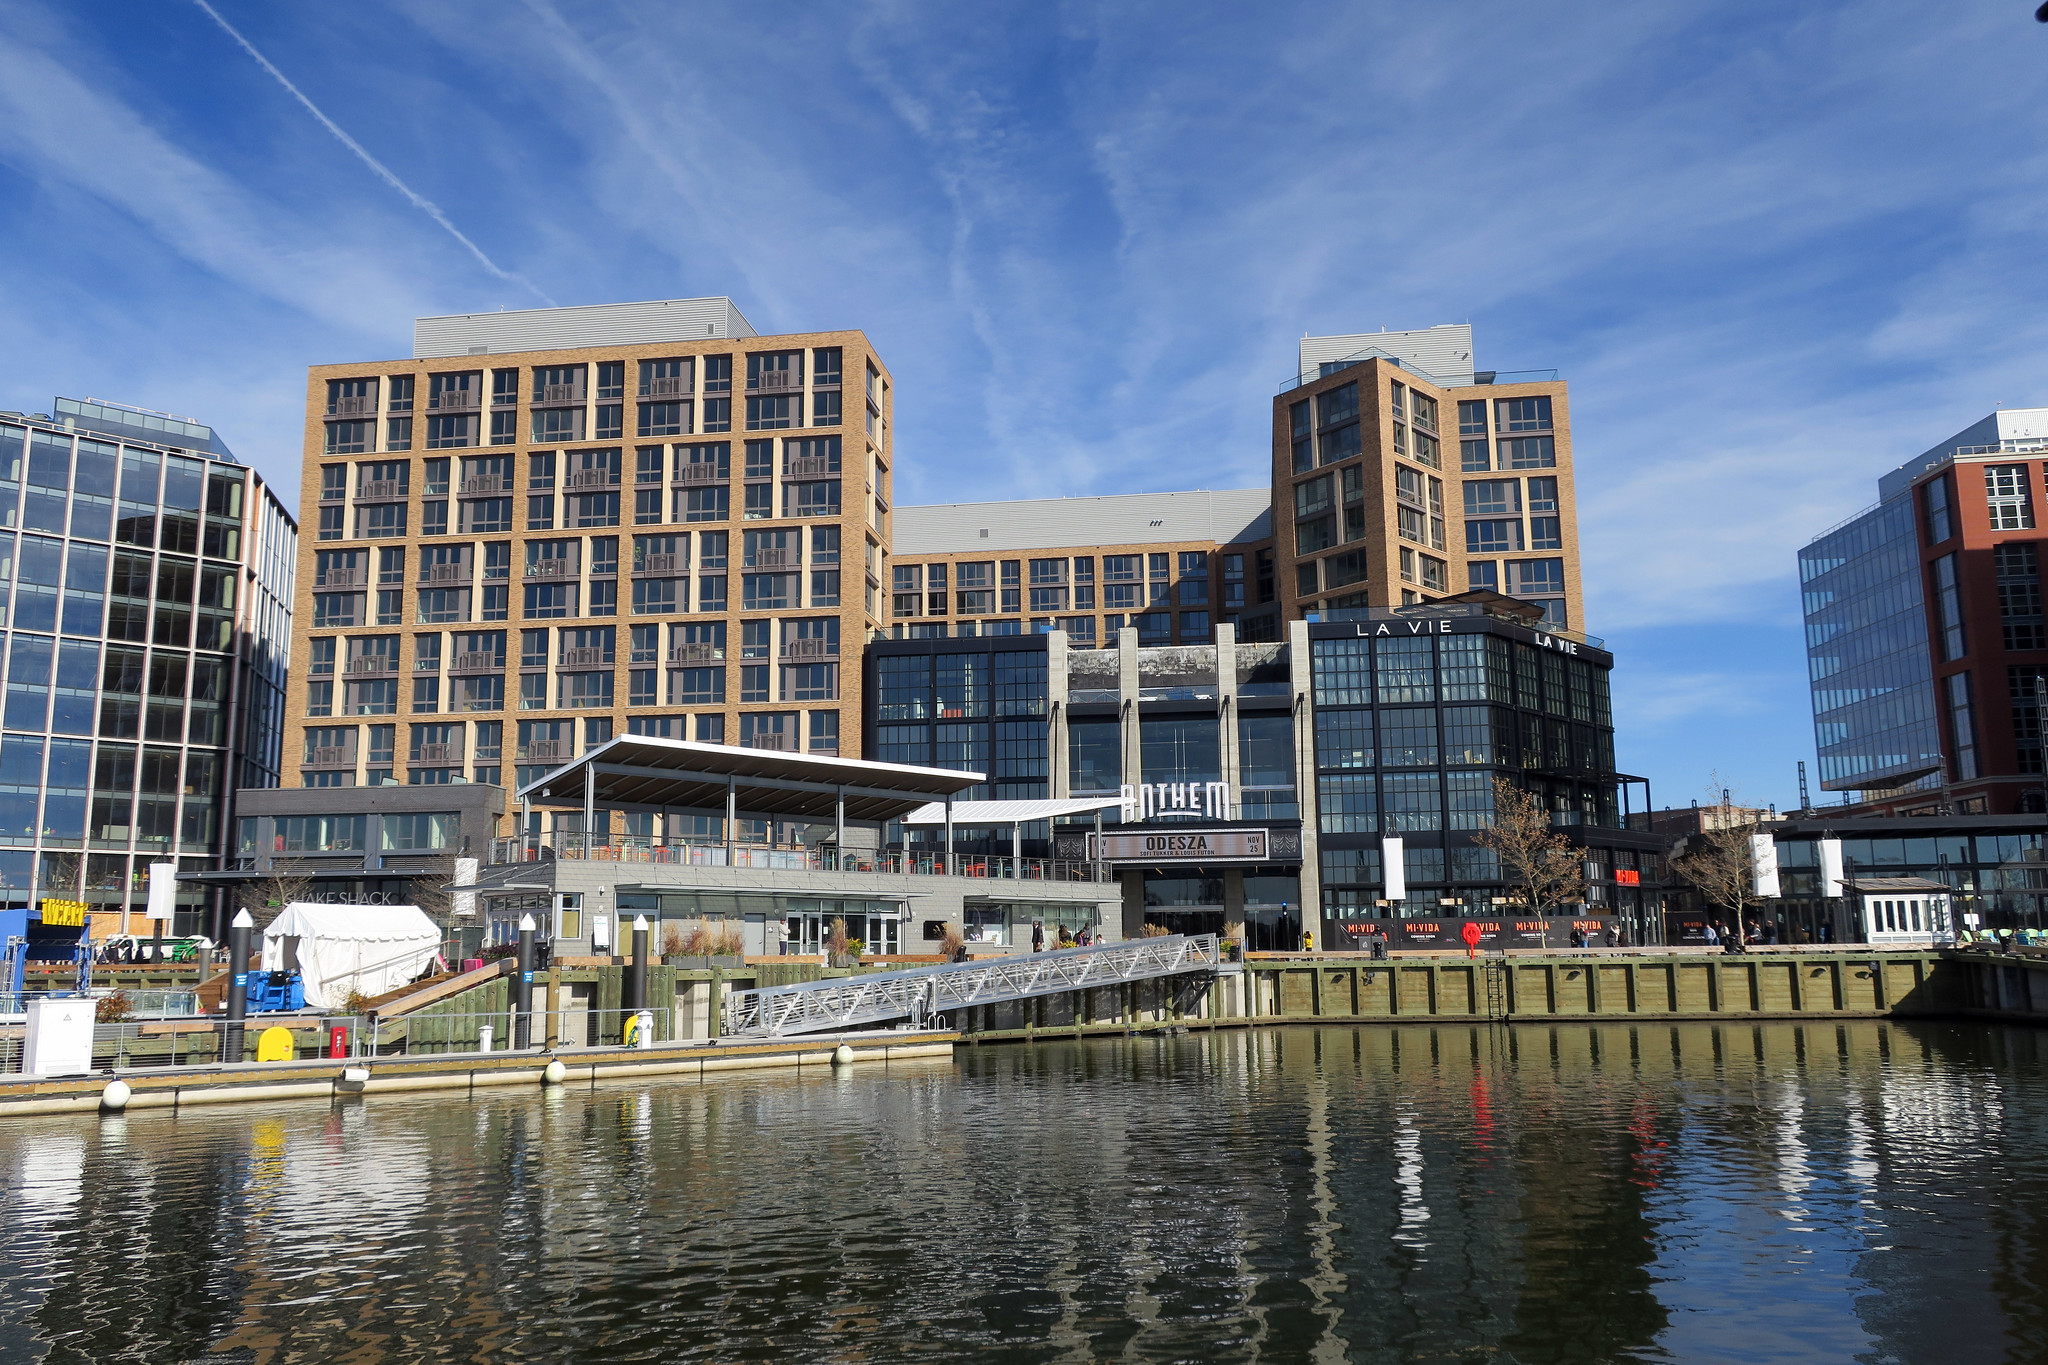 A waterfront development in Washington, DC, the Wharf, featuring mixed-use towers